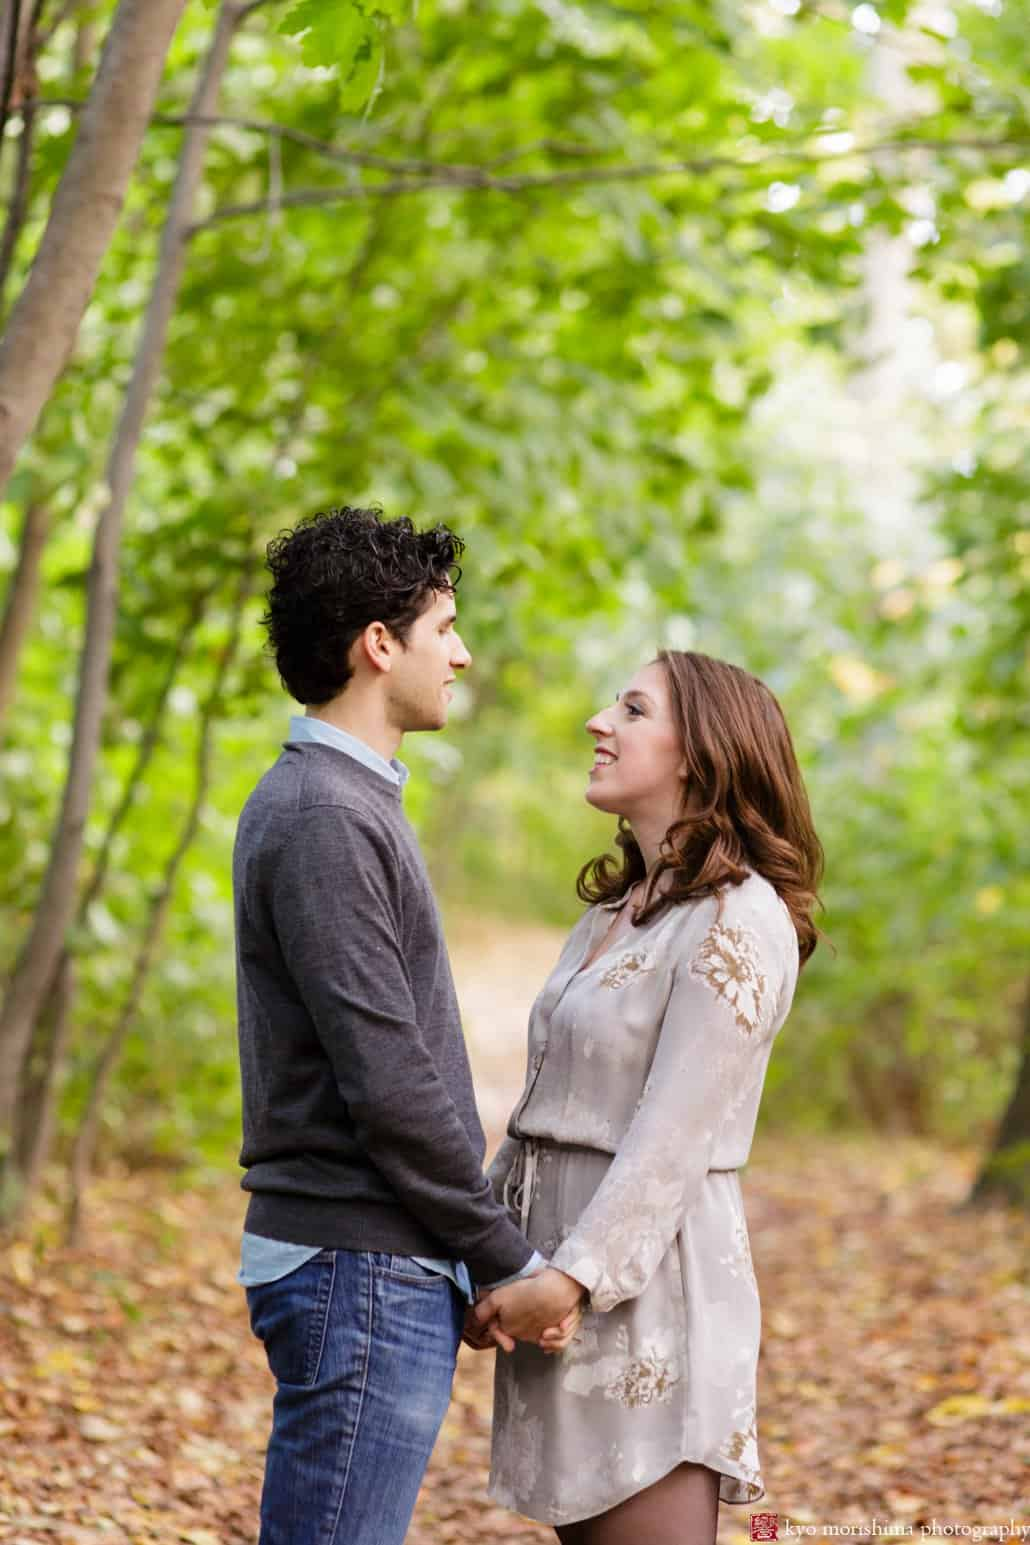 Fall engagement picture in Prospect Park, Brooklyn, photographed by Kyo Morishima